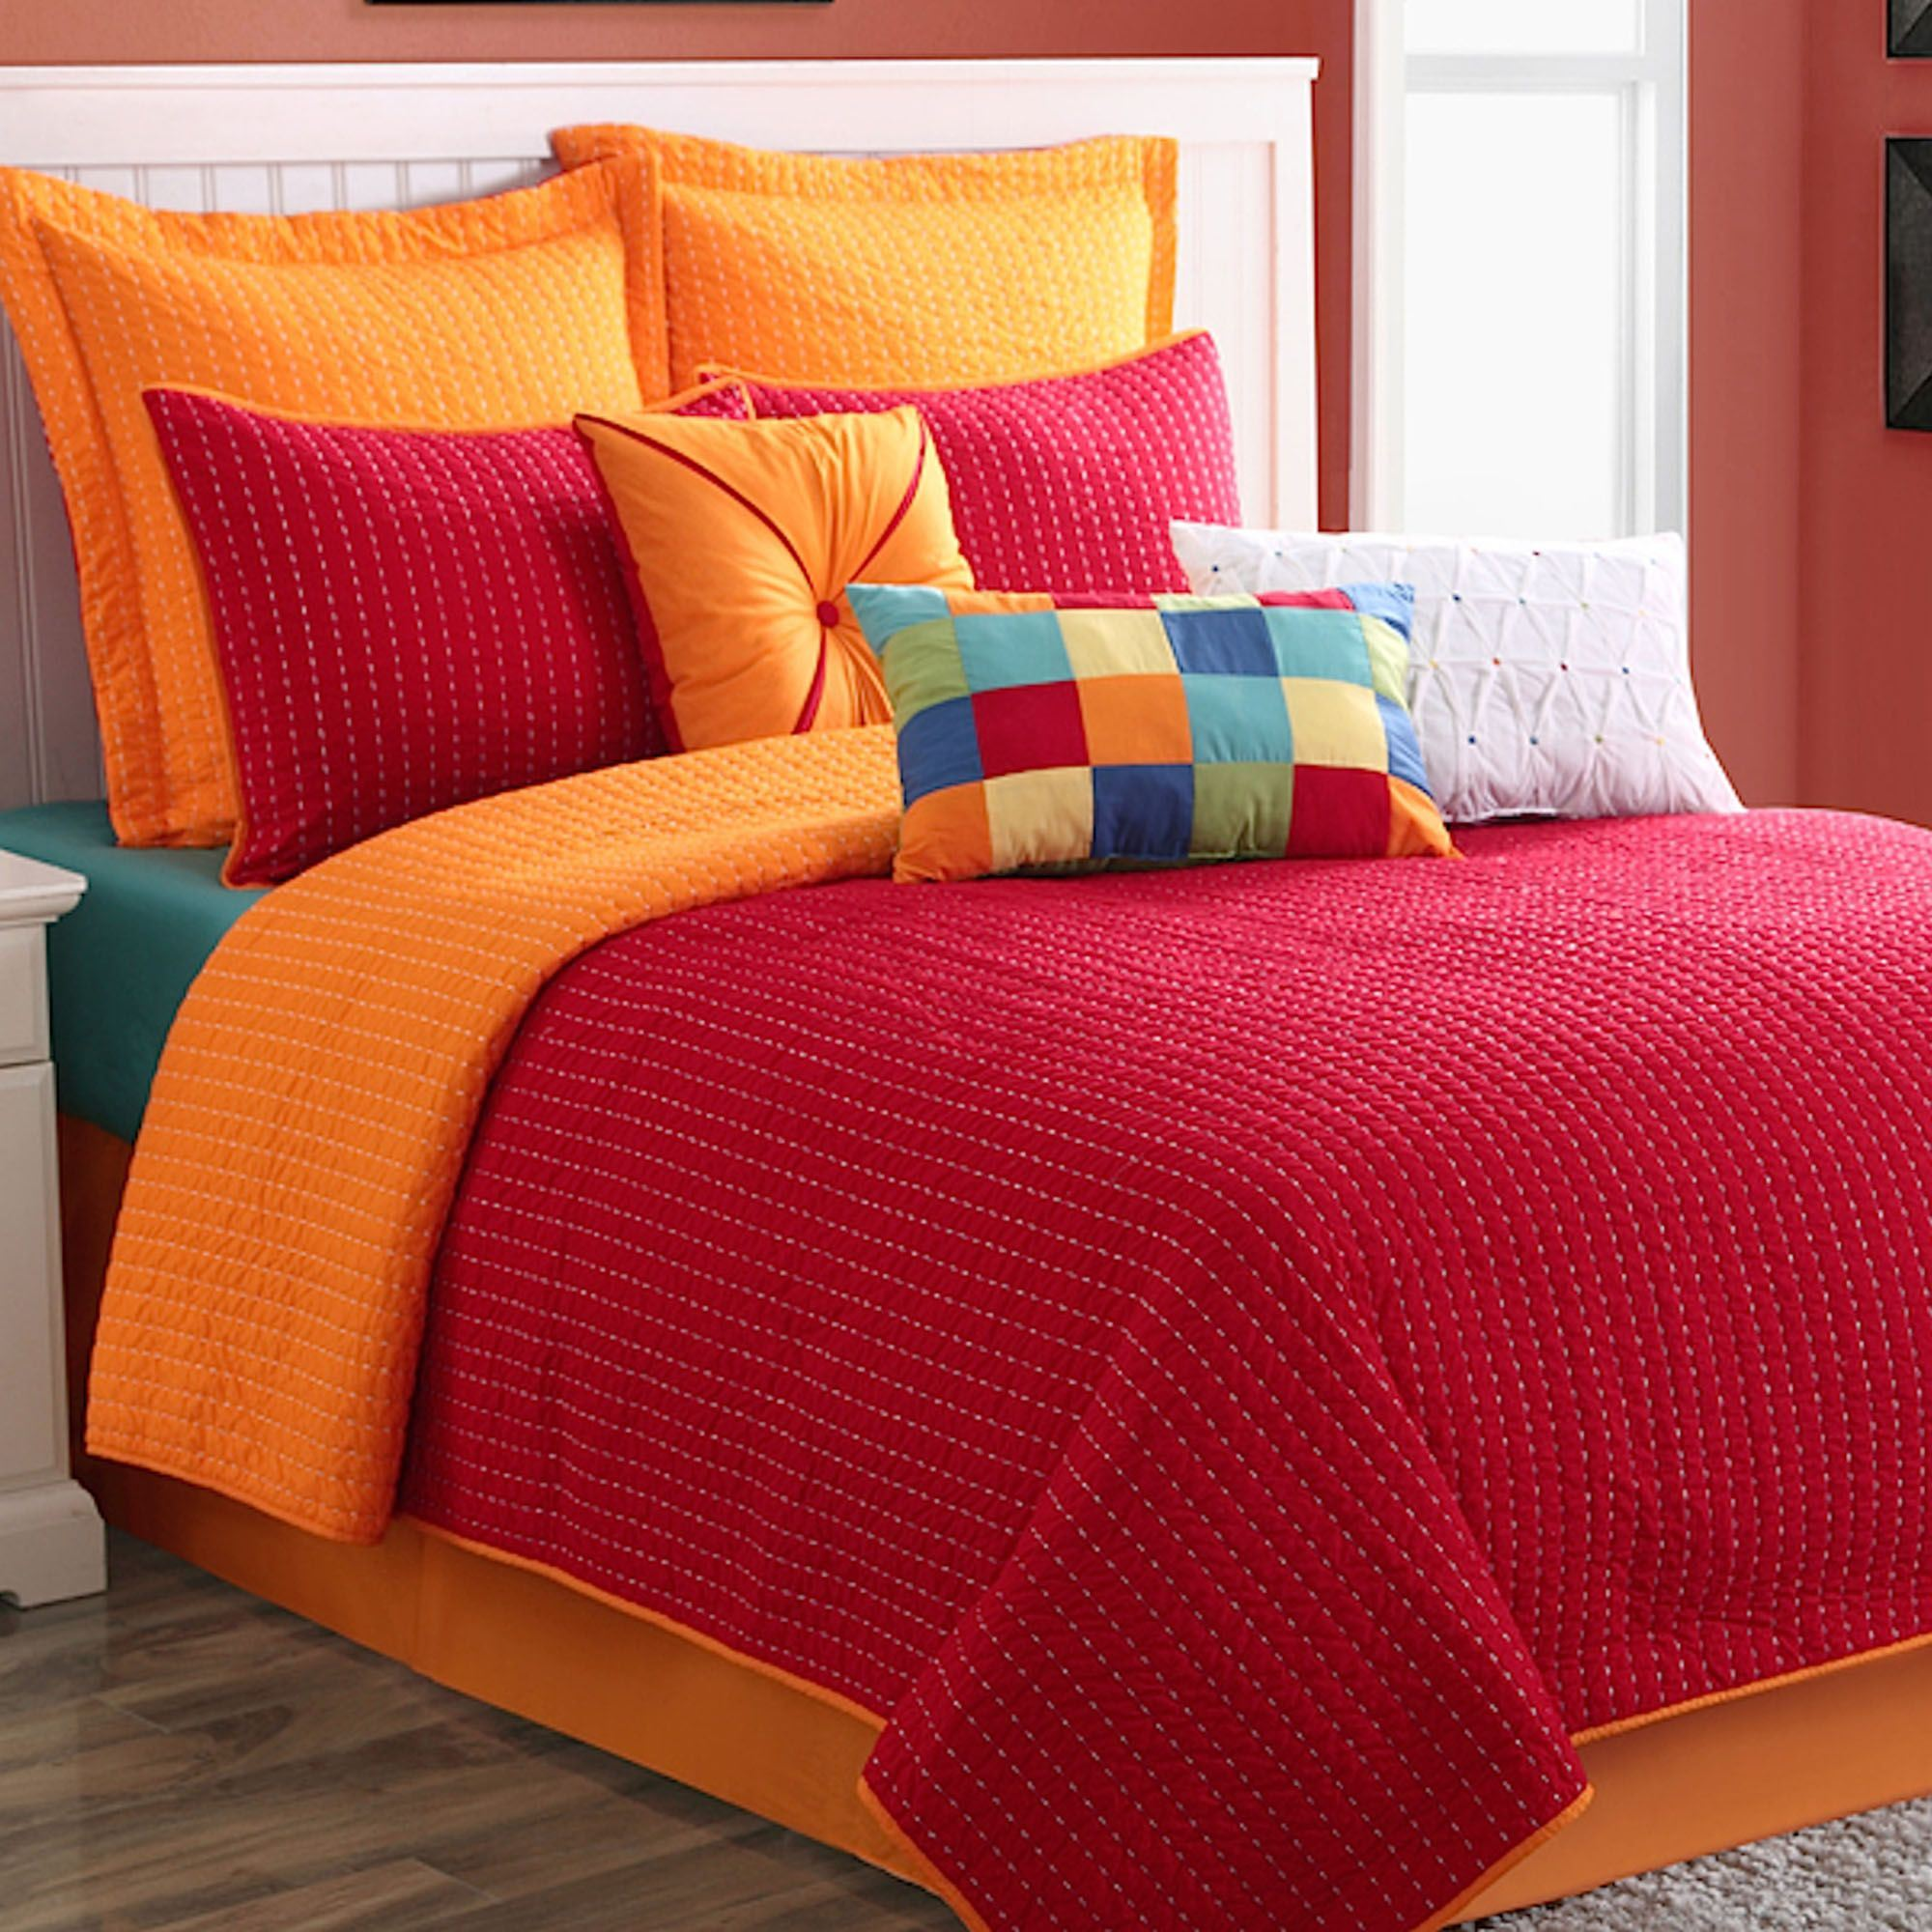 Nice Dash Red Orange Coverlet Set. Click To Expand